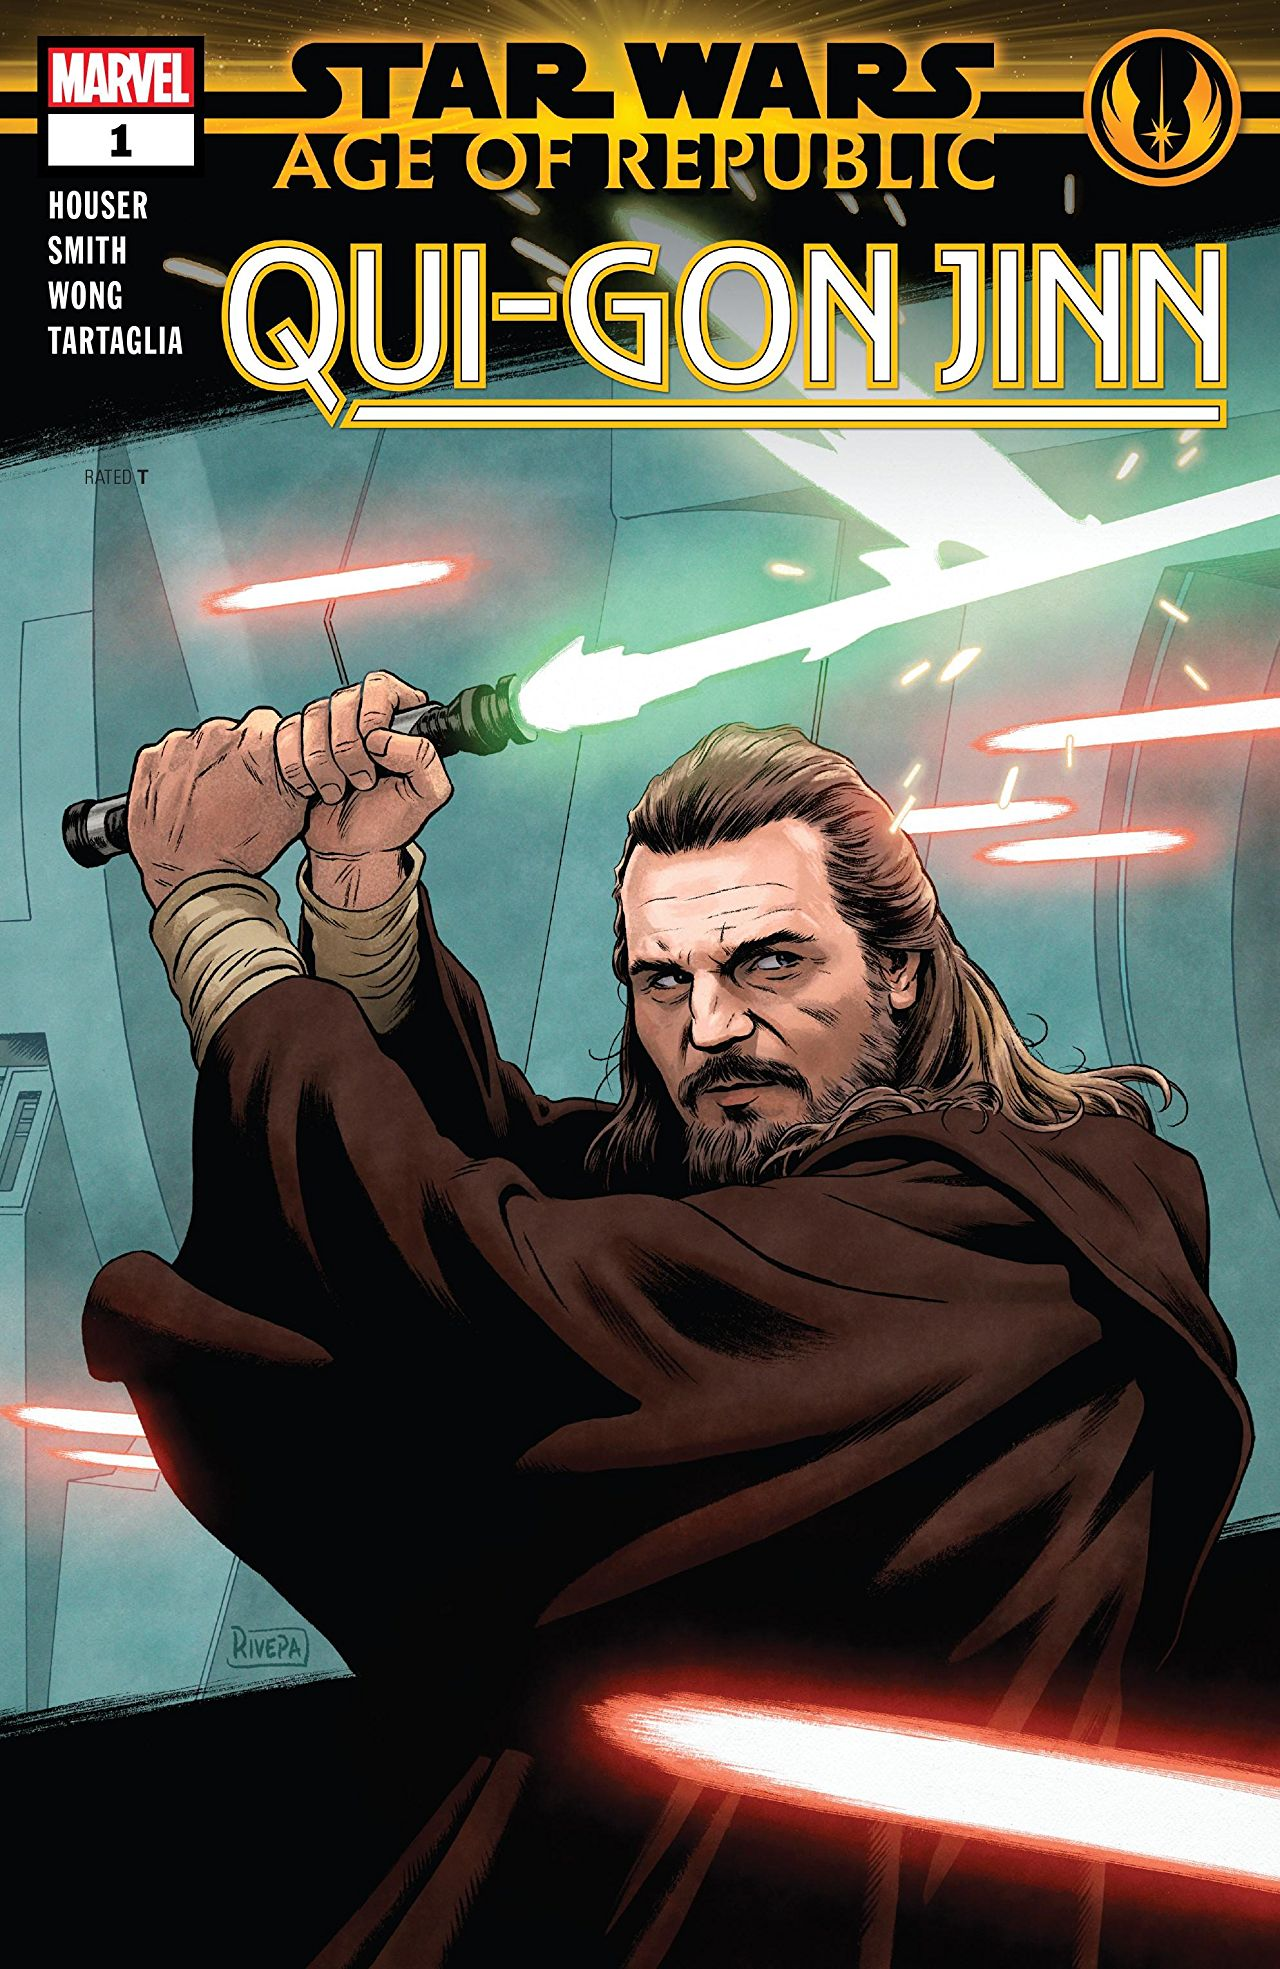 [EXCLUSIVE] Marvel Preview - Star Wars: Age Of The Republic - Qui-Gon Jinn